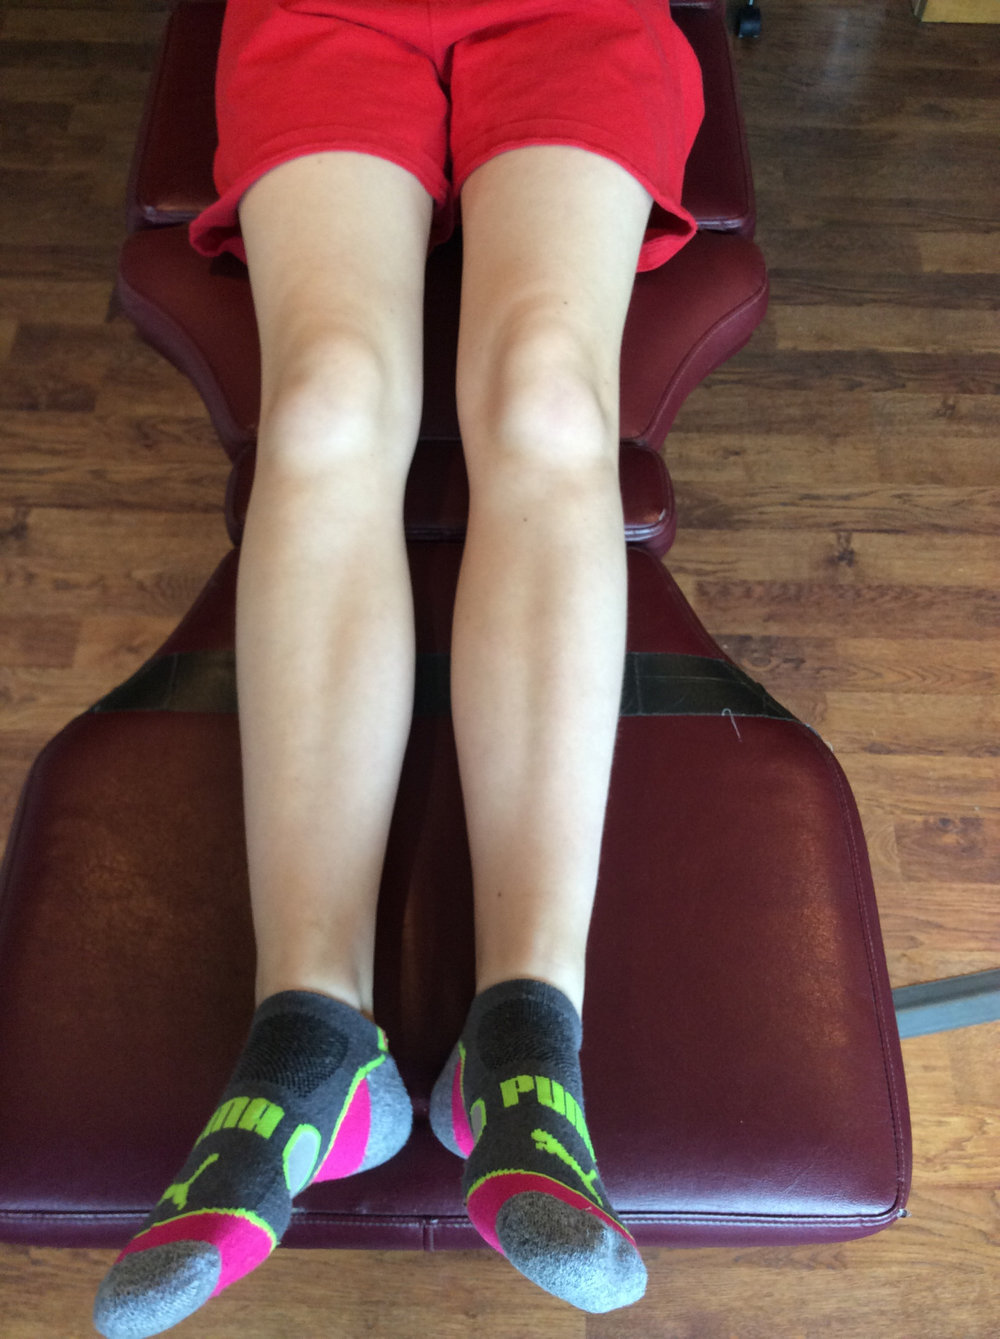 knees neutral, note external rotation of the right foot and decreased progression angle